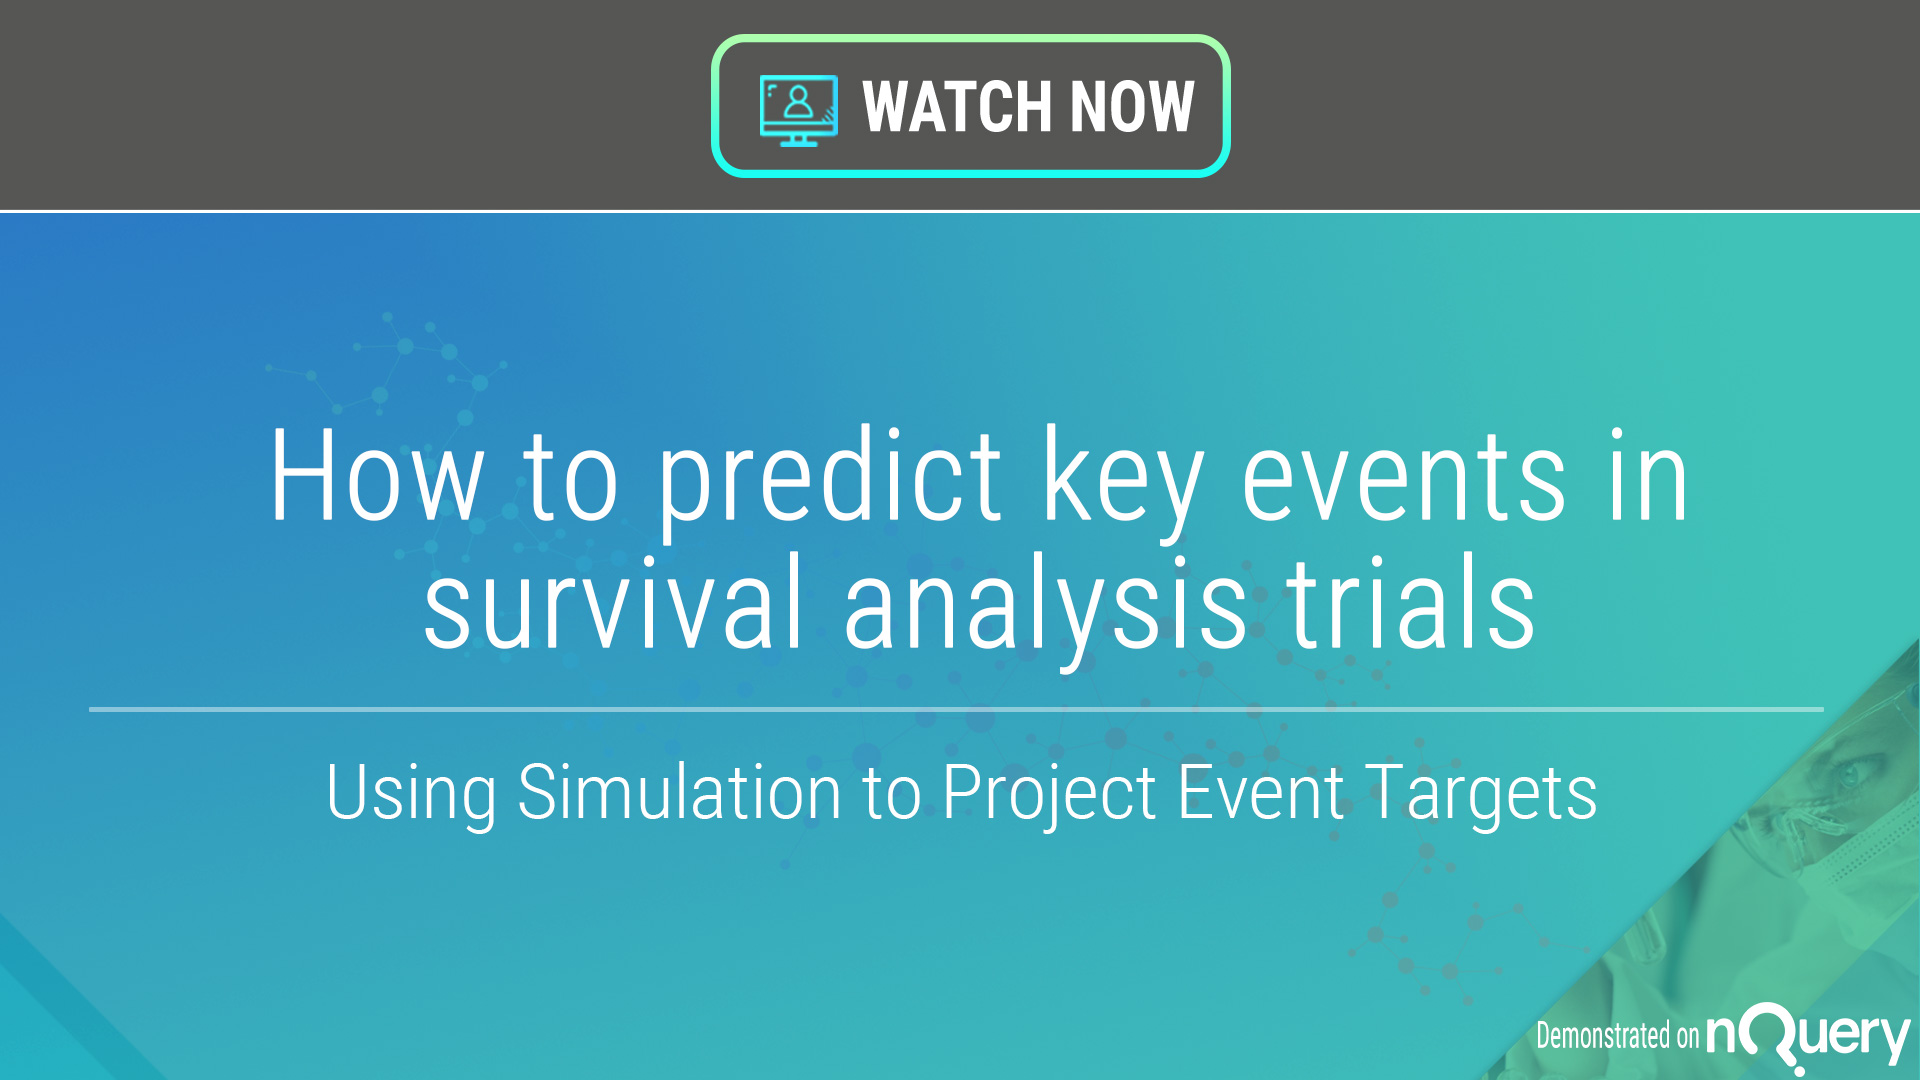 how-to-predict-key-events-in-survival-analysis-trials-on-demand